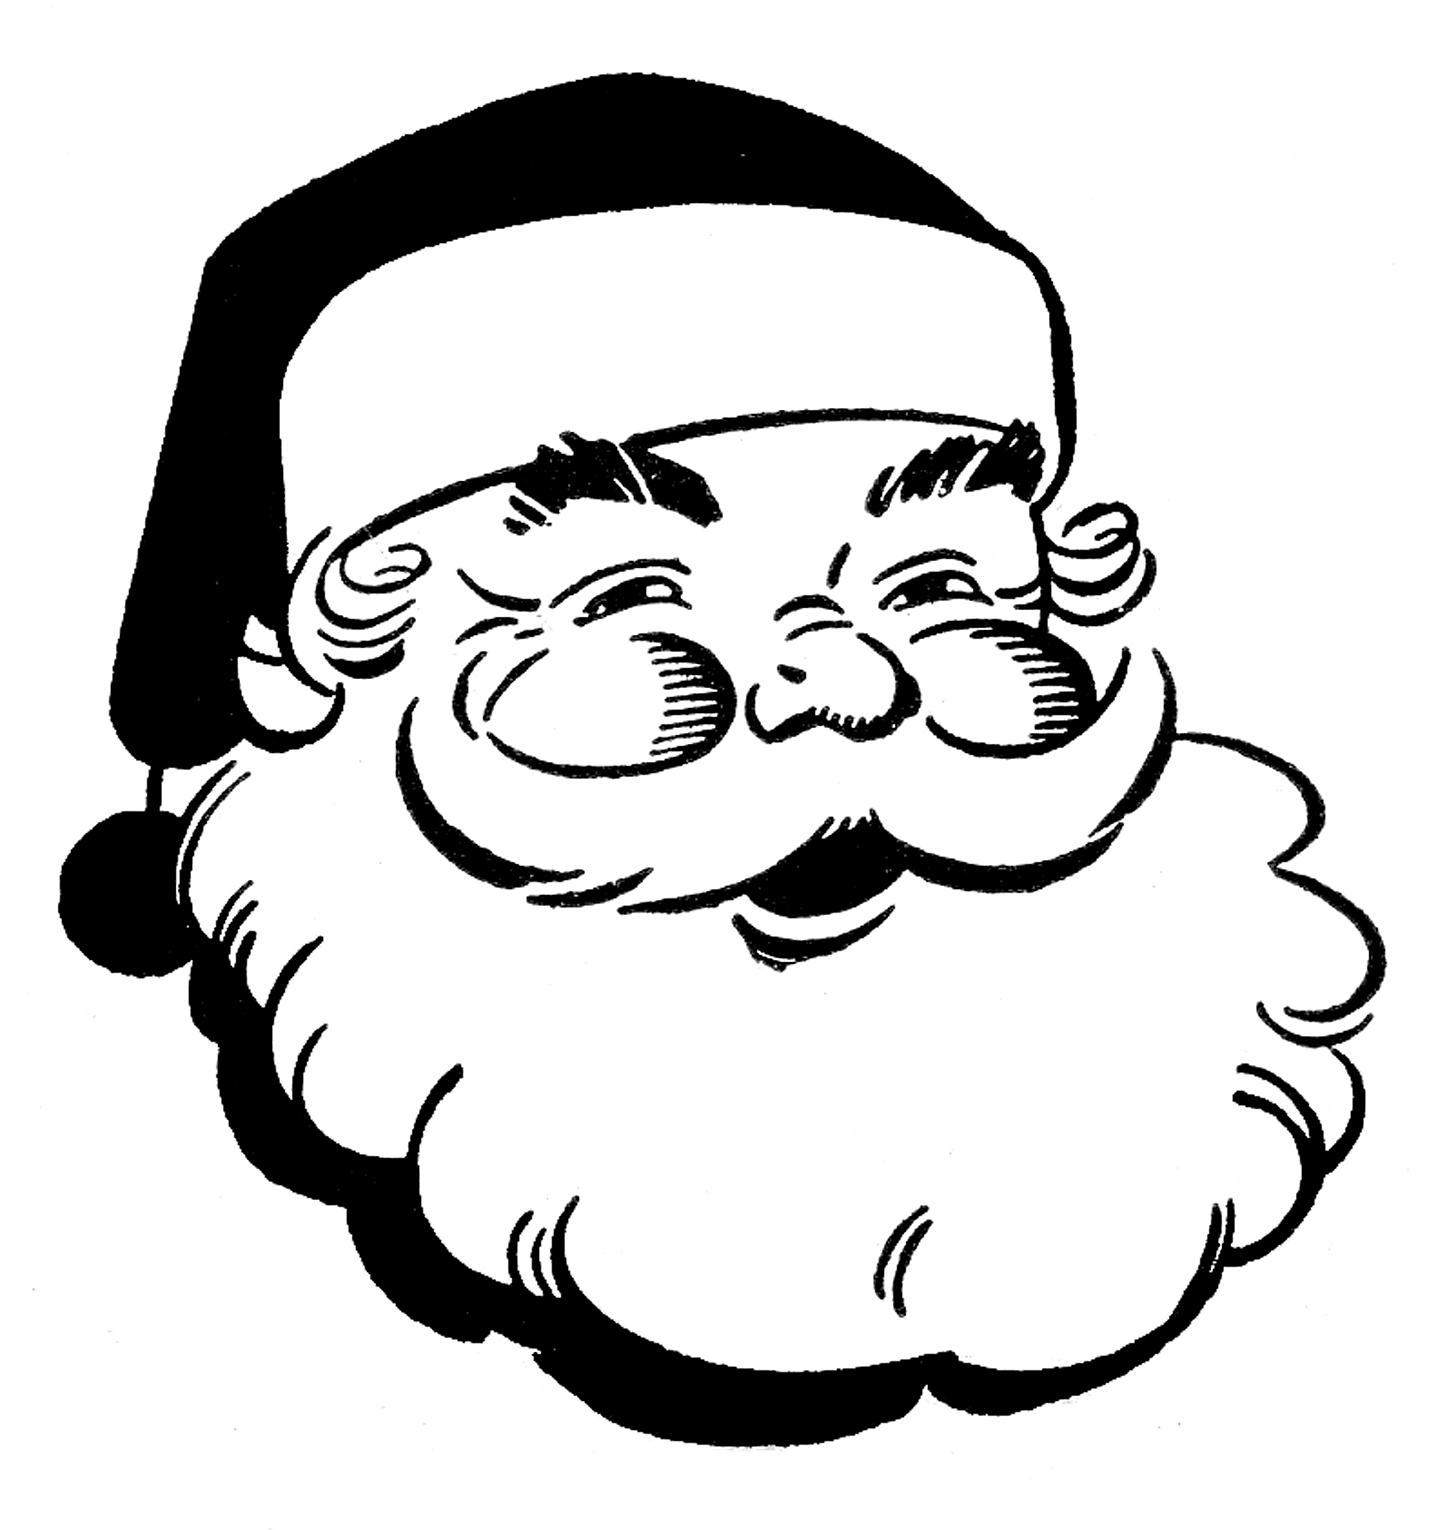 santa claus pictures to print santa claus coloring pages to download and print for free santa claus to pictures print